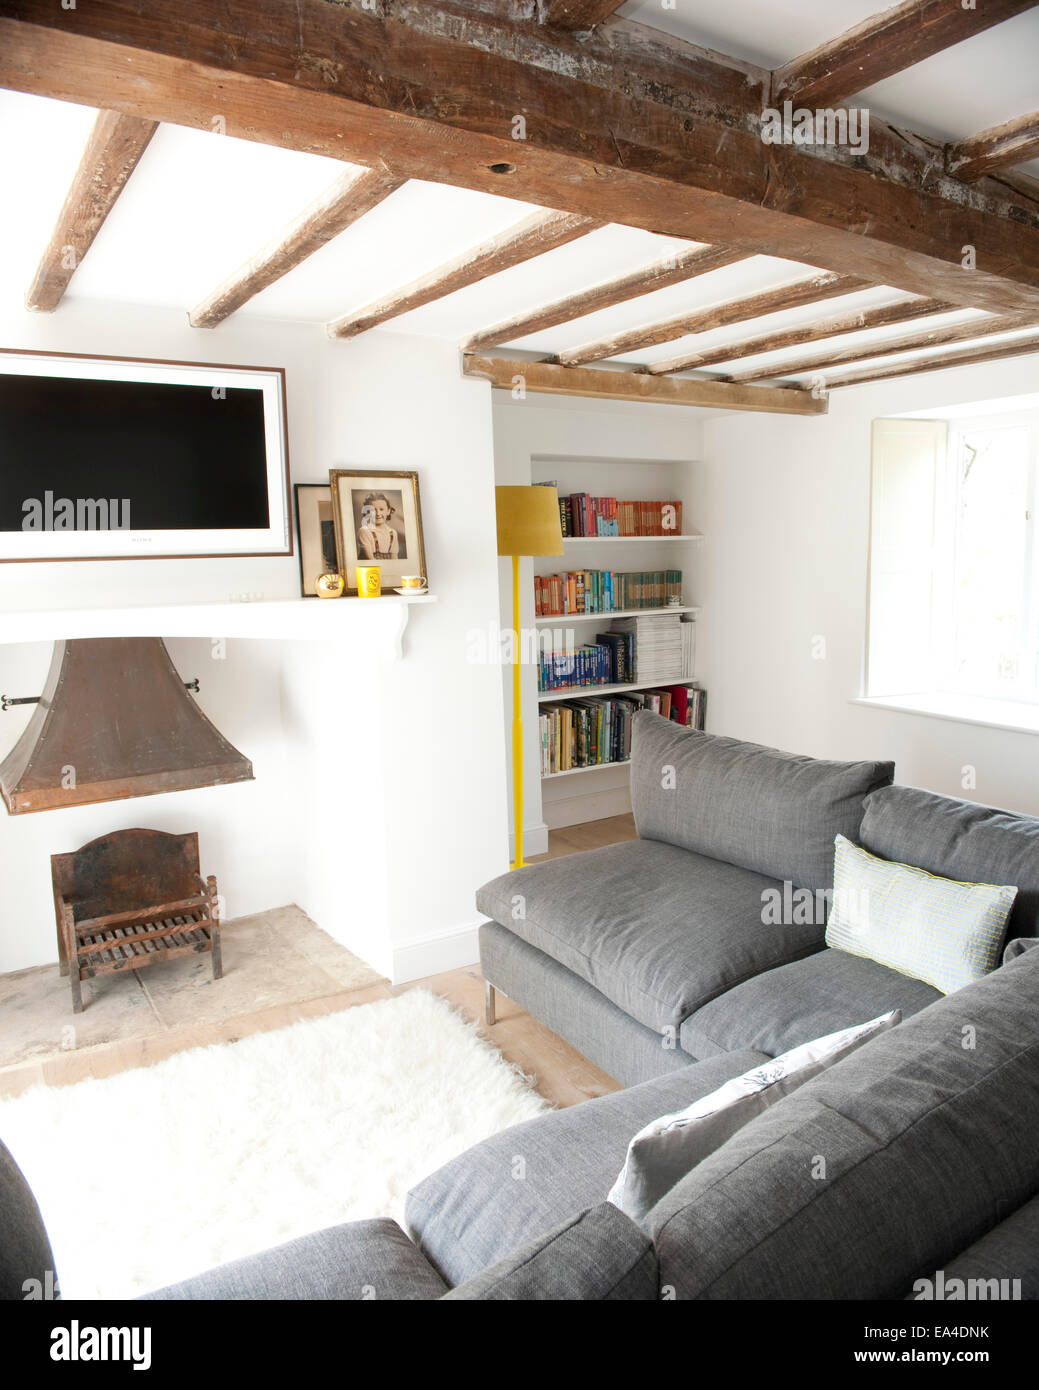 Uk Living Room Furniture Grey Corner Sofa In Beamed Living Room Of Cottage Interior Uk